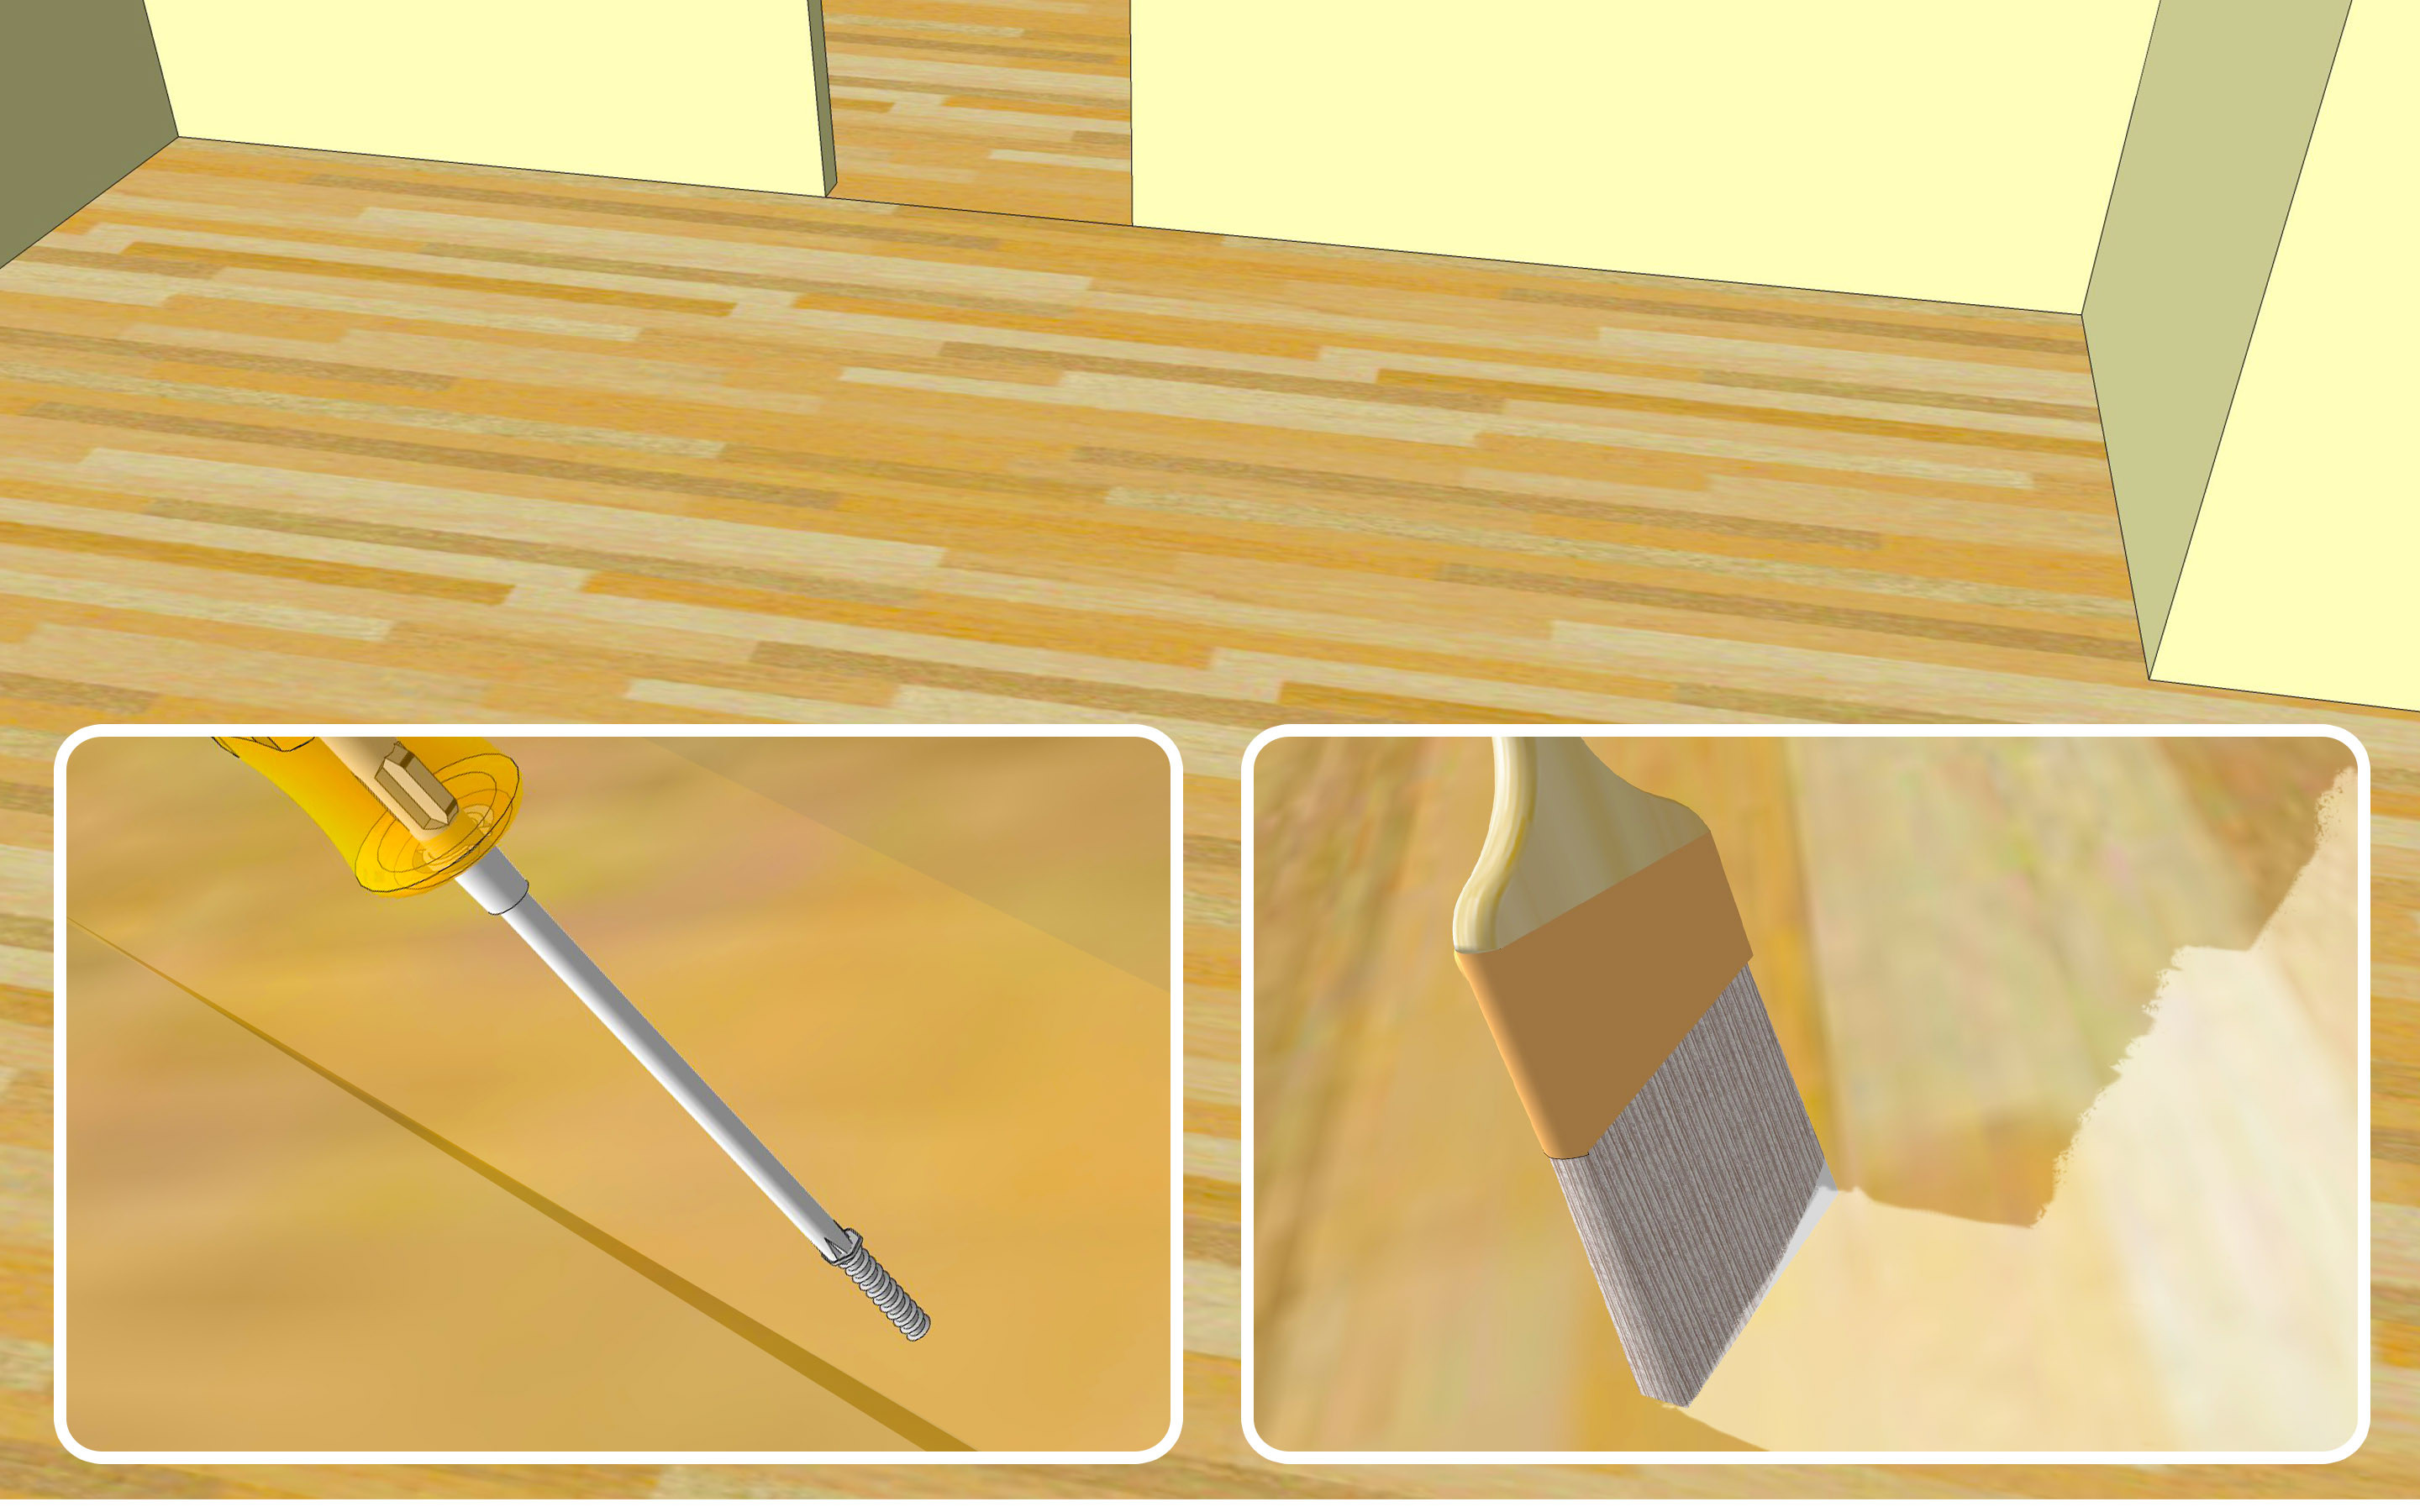 can you fill gaps in hardwood floors of how to take out carpet 13 steps with pictures wikihow regarding take out carpet step 13 version 2